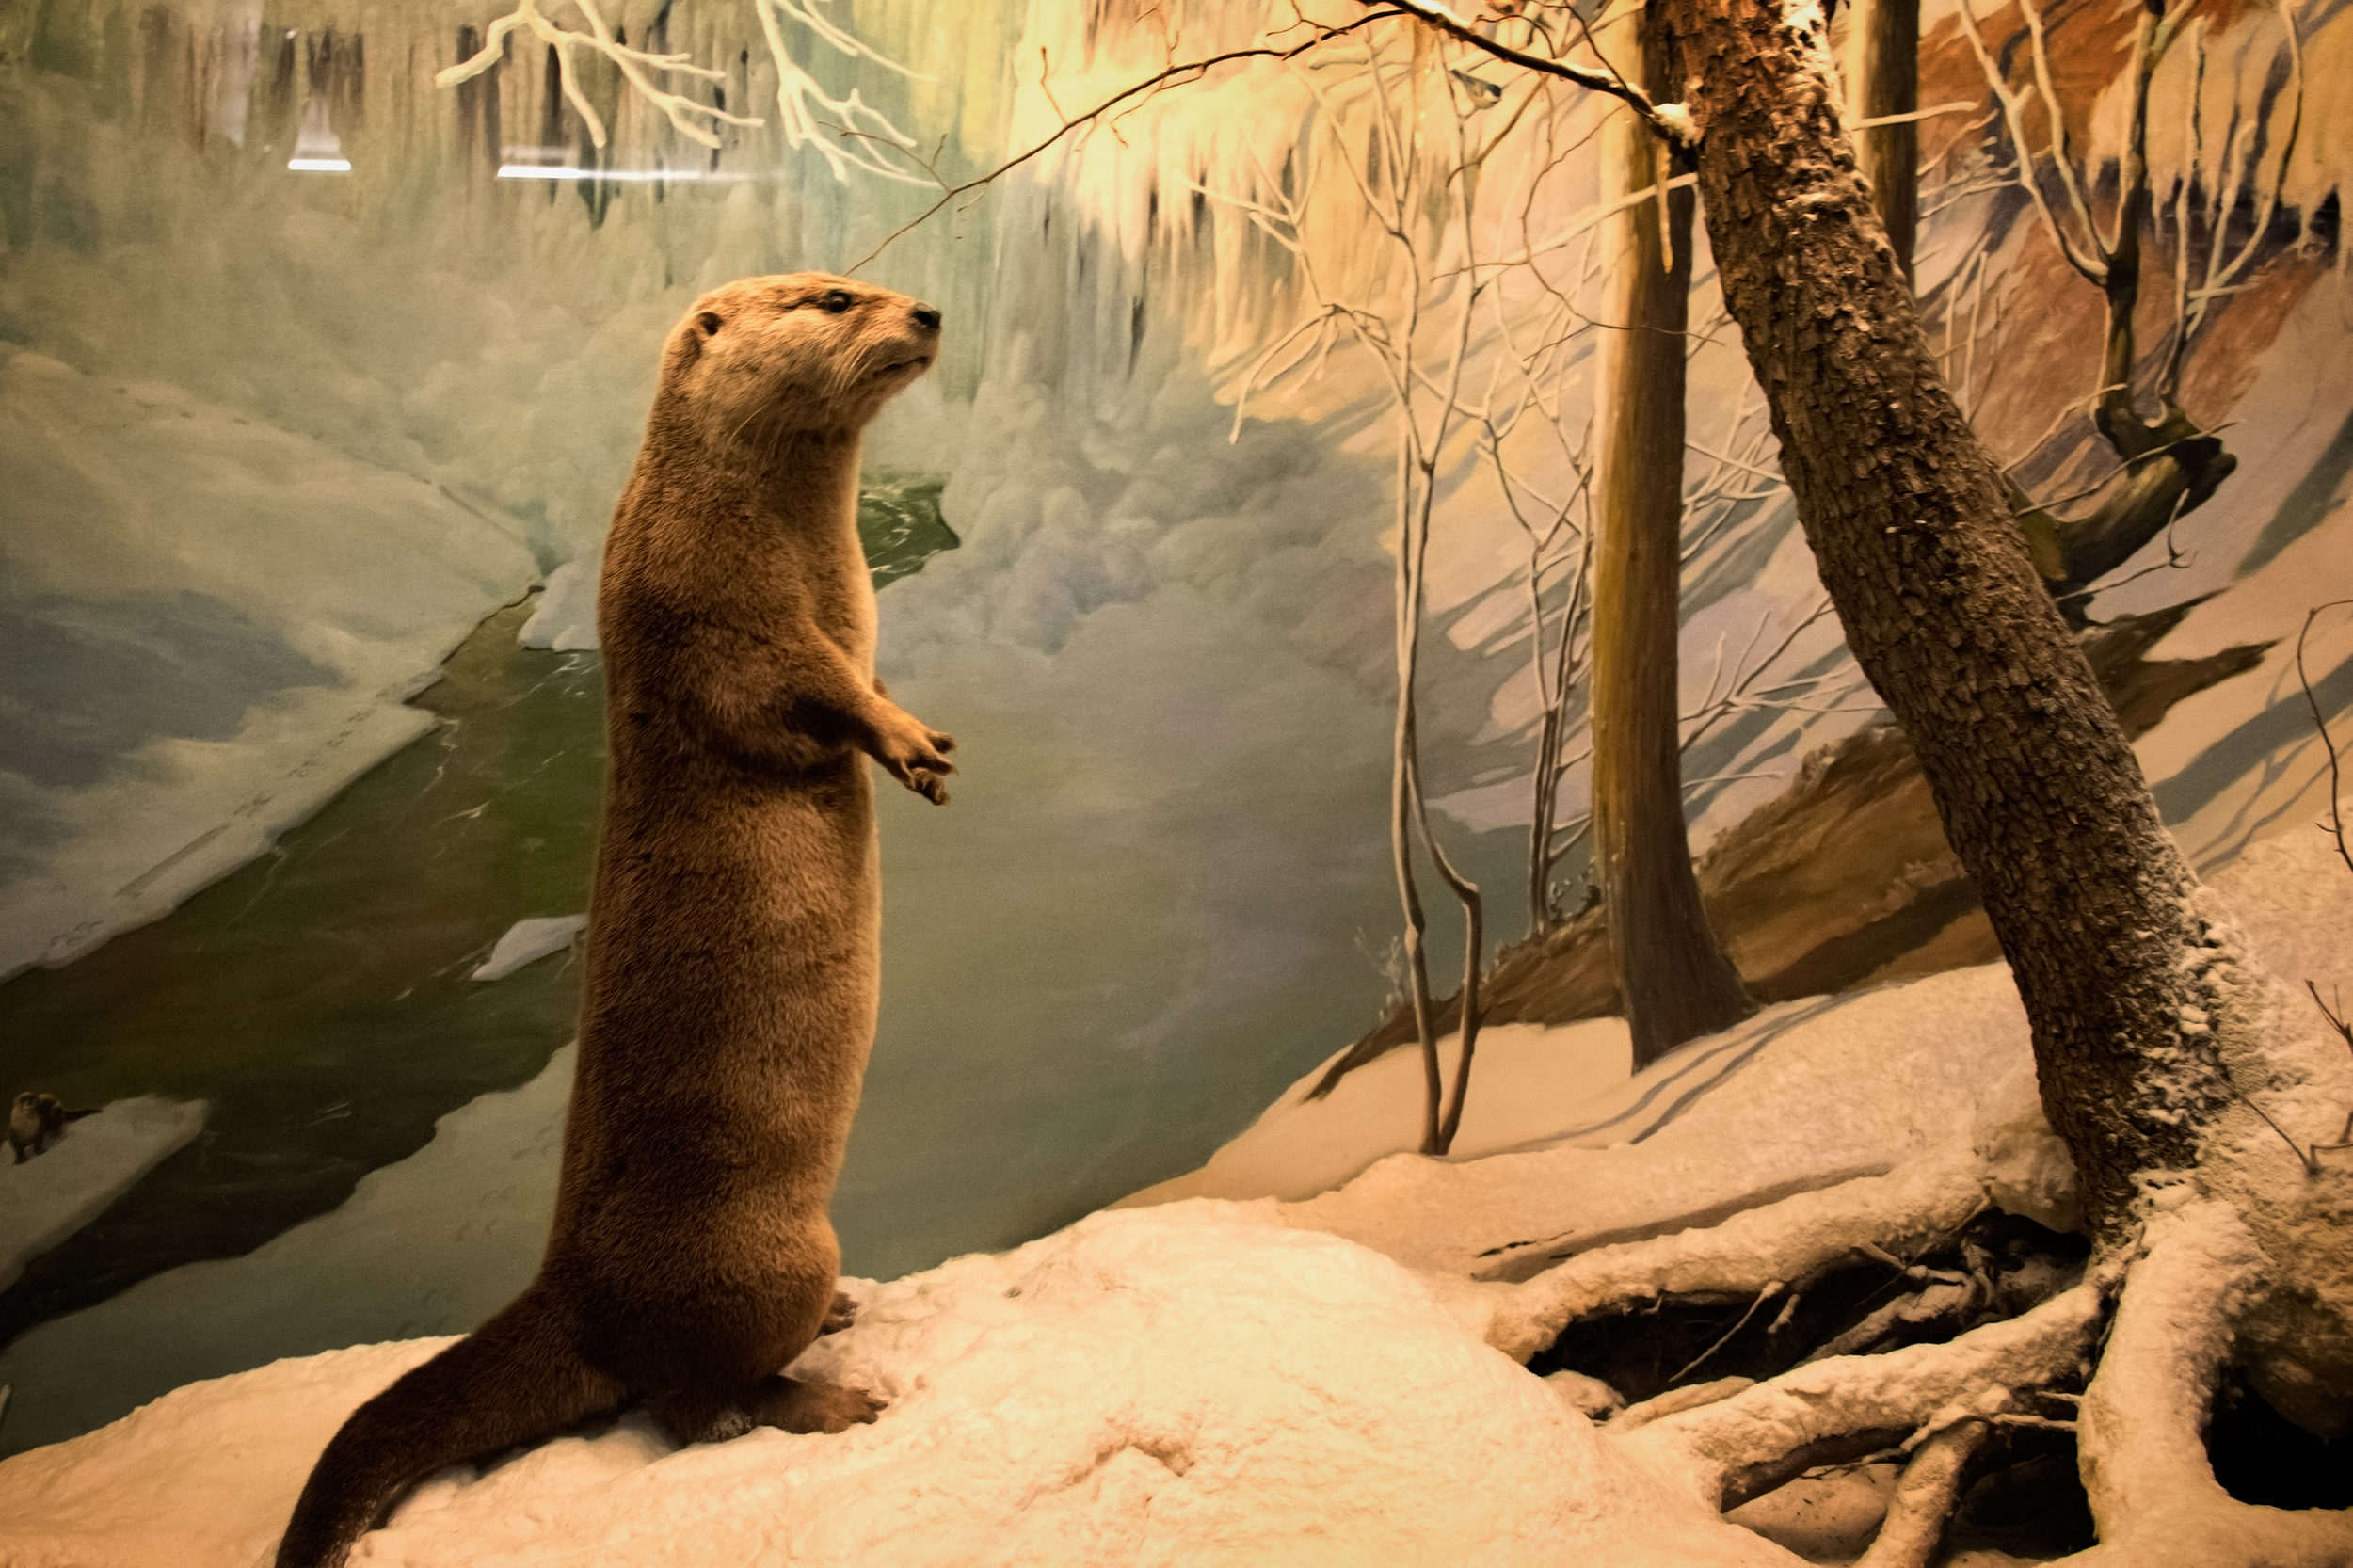 You otter believe they have greatdioramas...